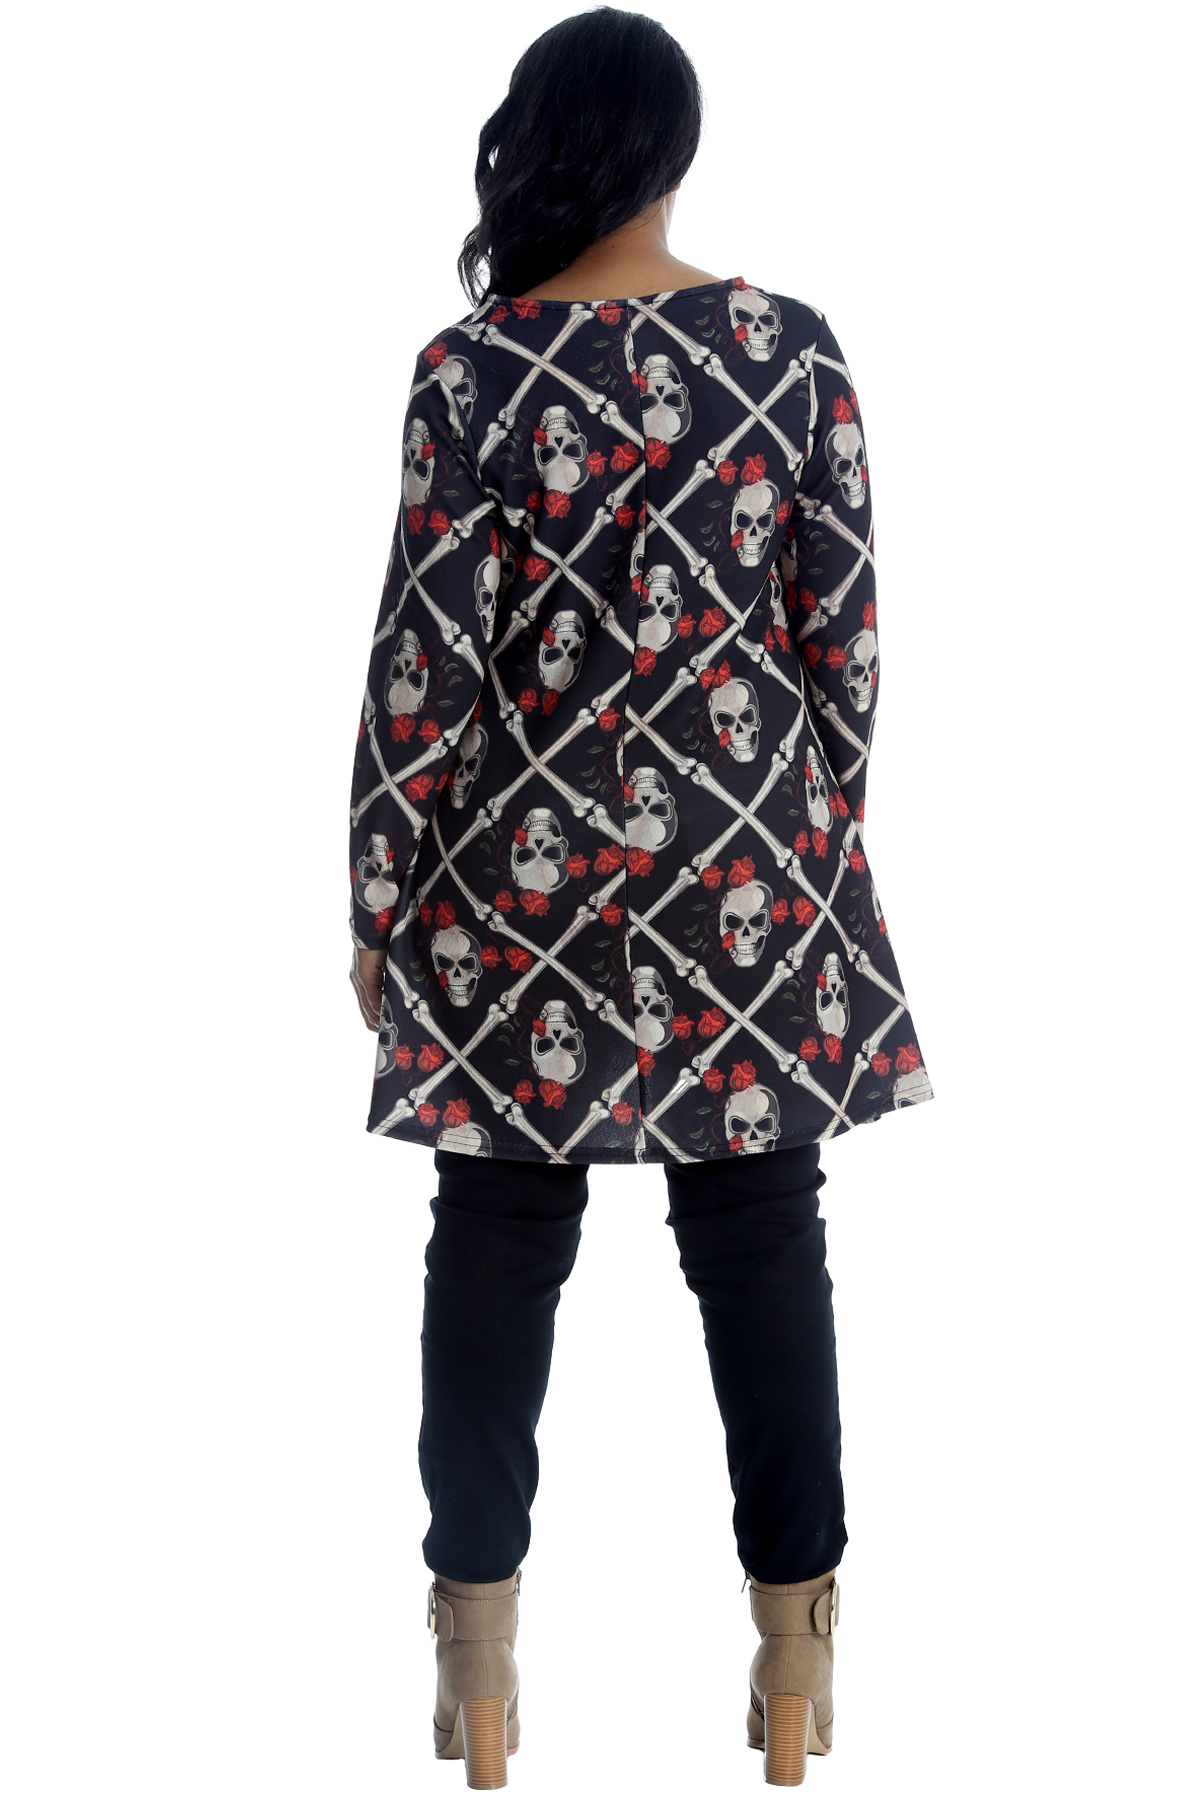 Womens Top Ladies Tunic Skull and Roses Print Tattoo Gothic Plus Size Nouvelle